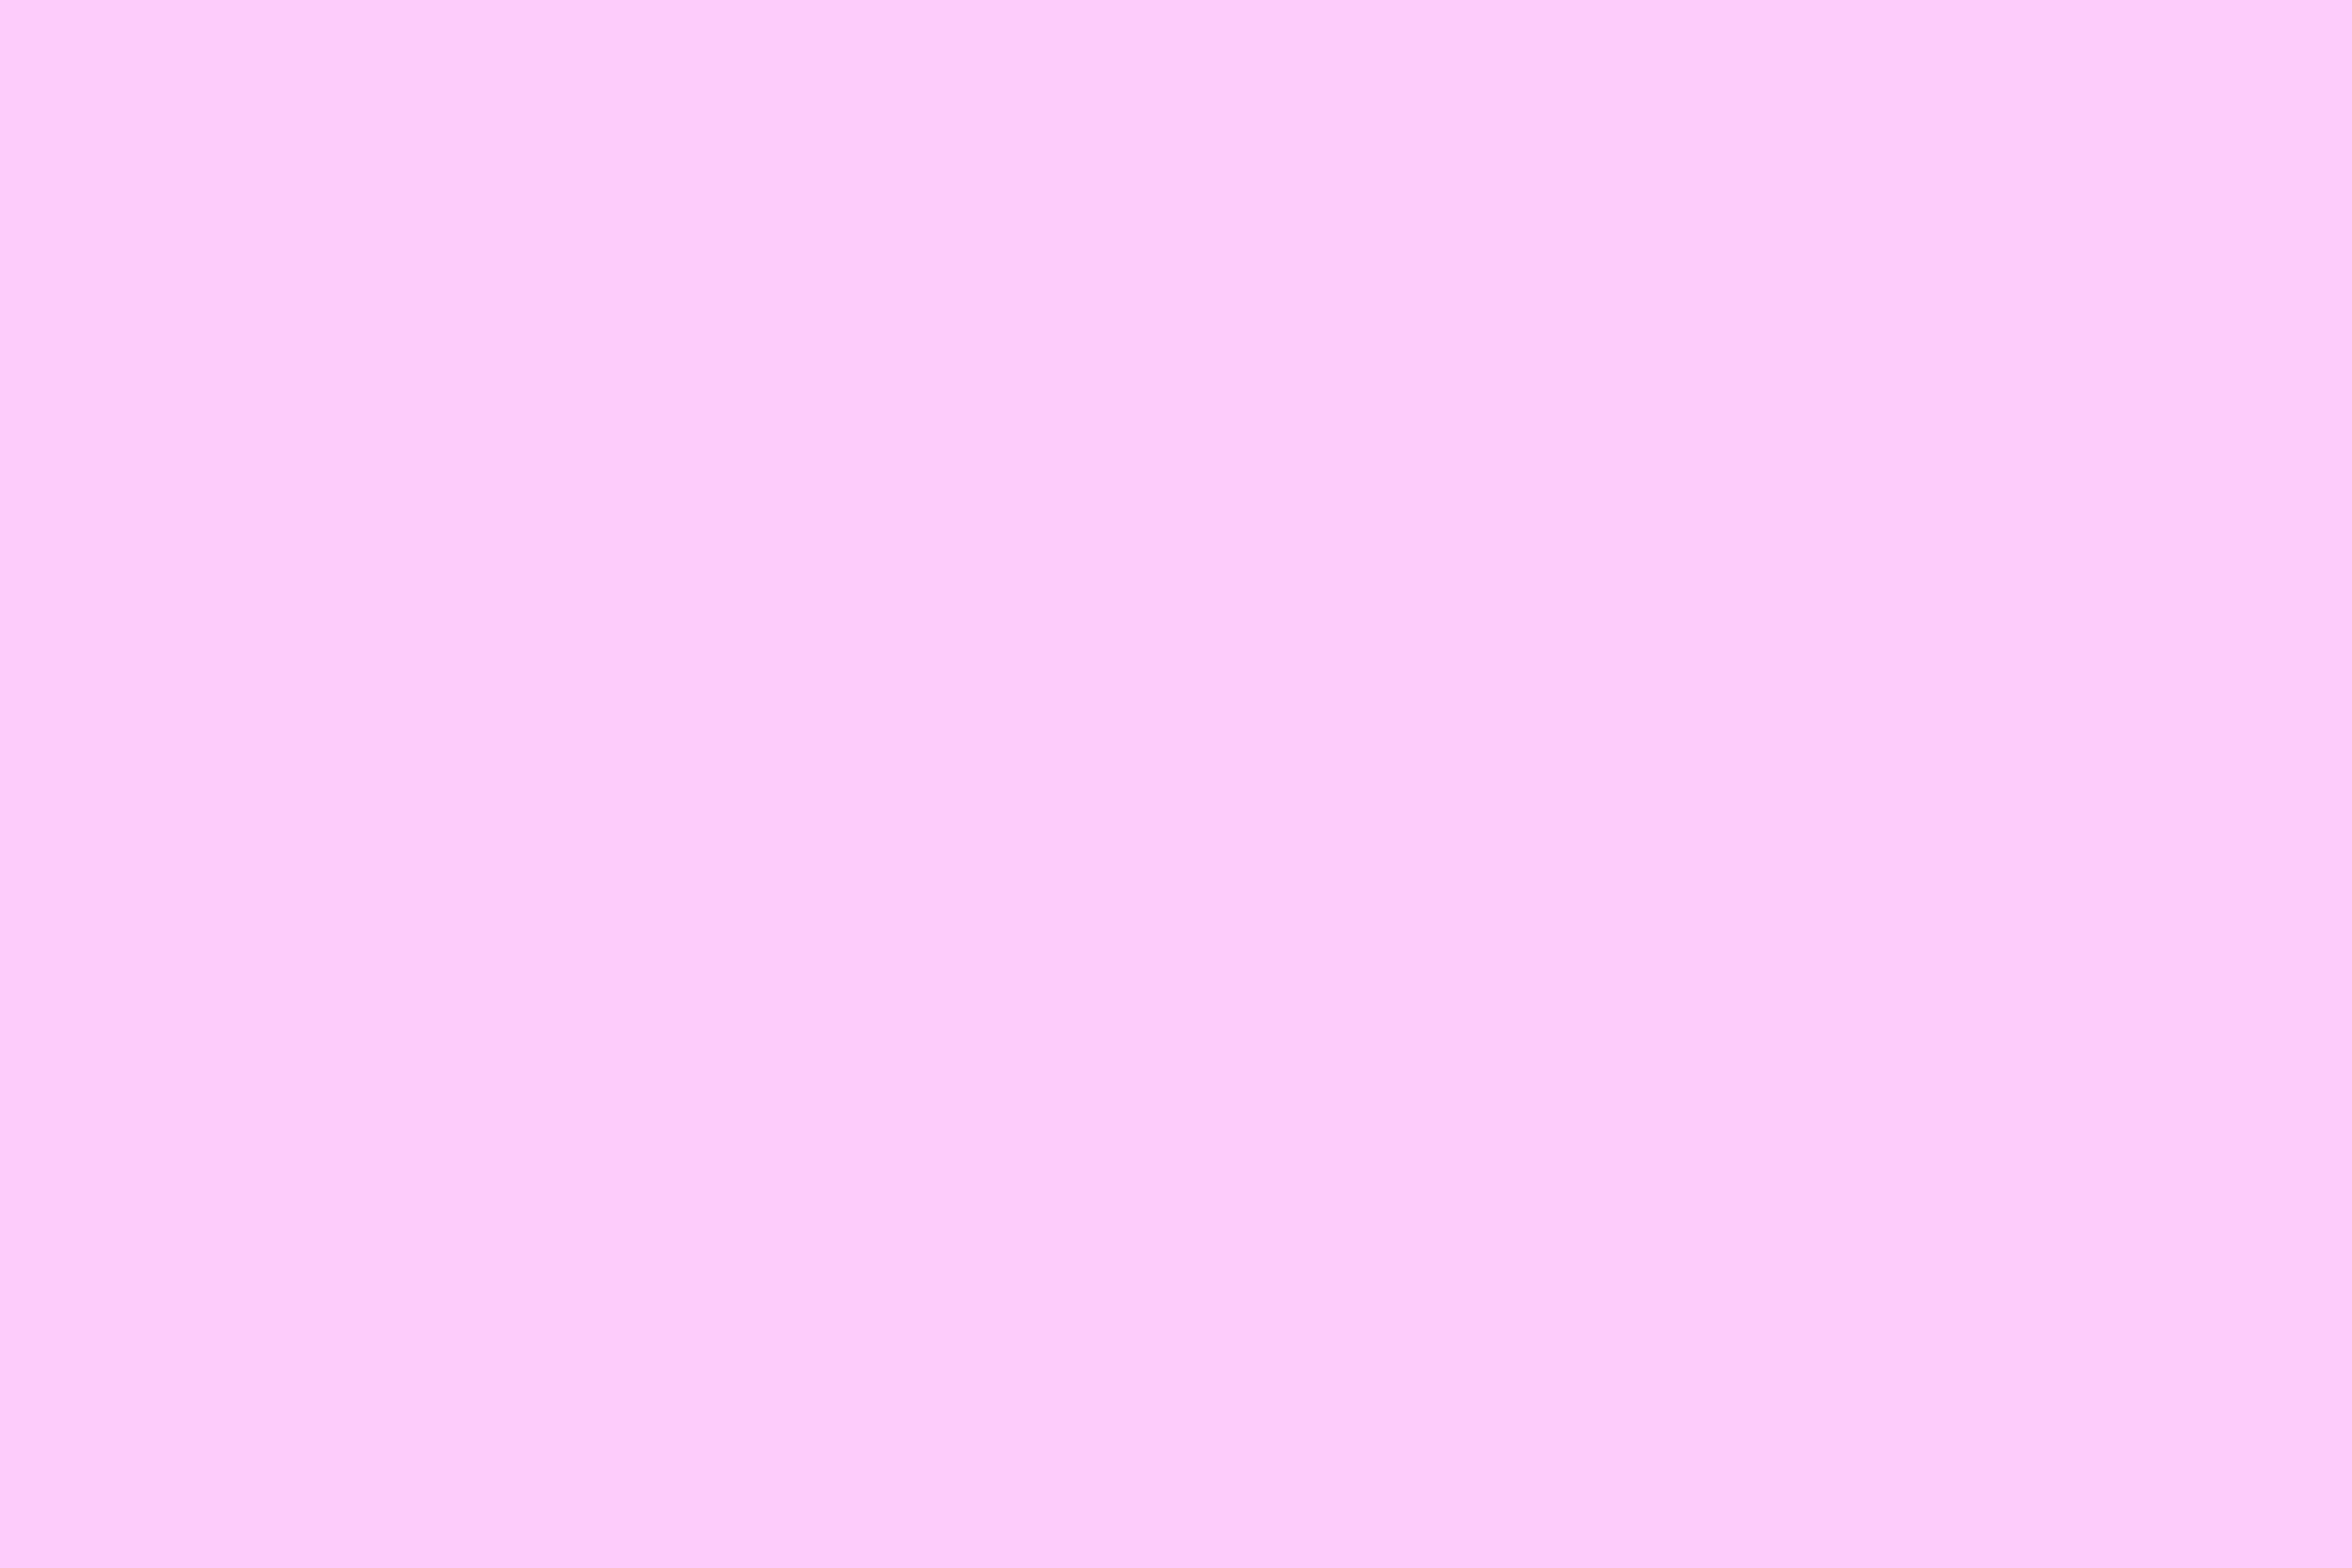 Sweet Pink Pastel Solid Photography Backdrop - 24\ x 36\